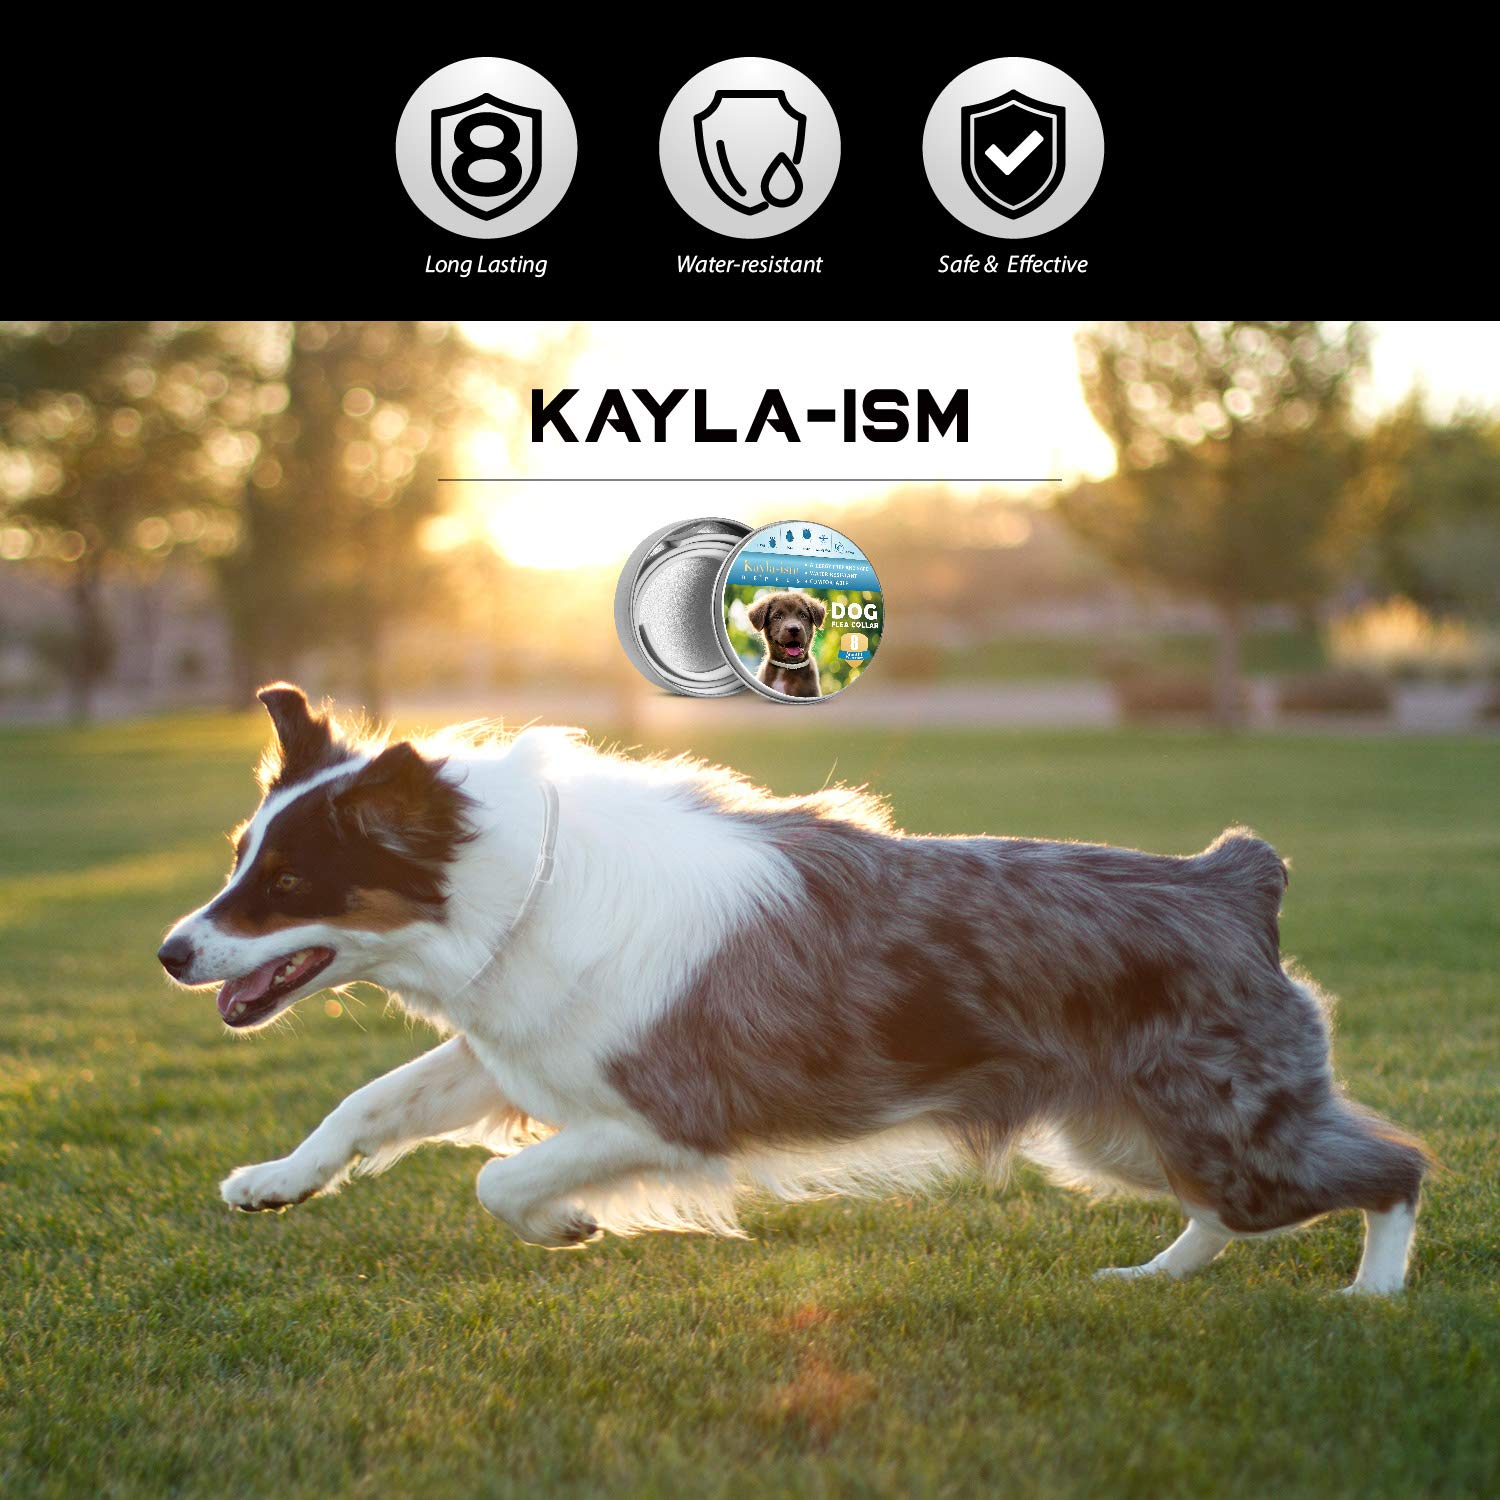 Kayla-ism Dog Flea and Tick Collar, Natural and Essential Oils, Waterproof, One Size Fits All, 8 Months Full Protection, Healthy and Harmless by Kayla-ism (Image #6)